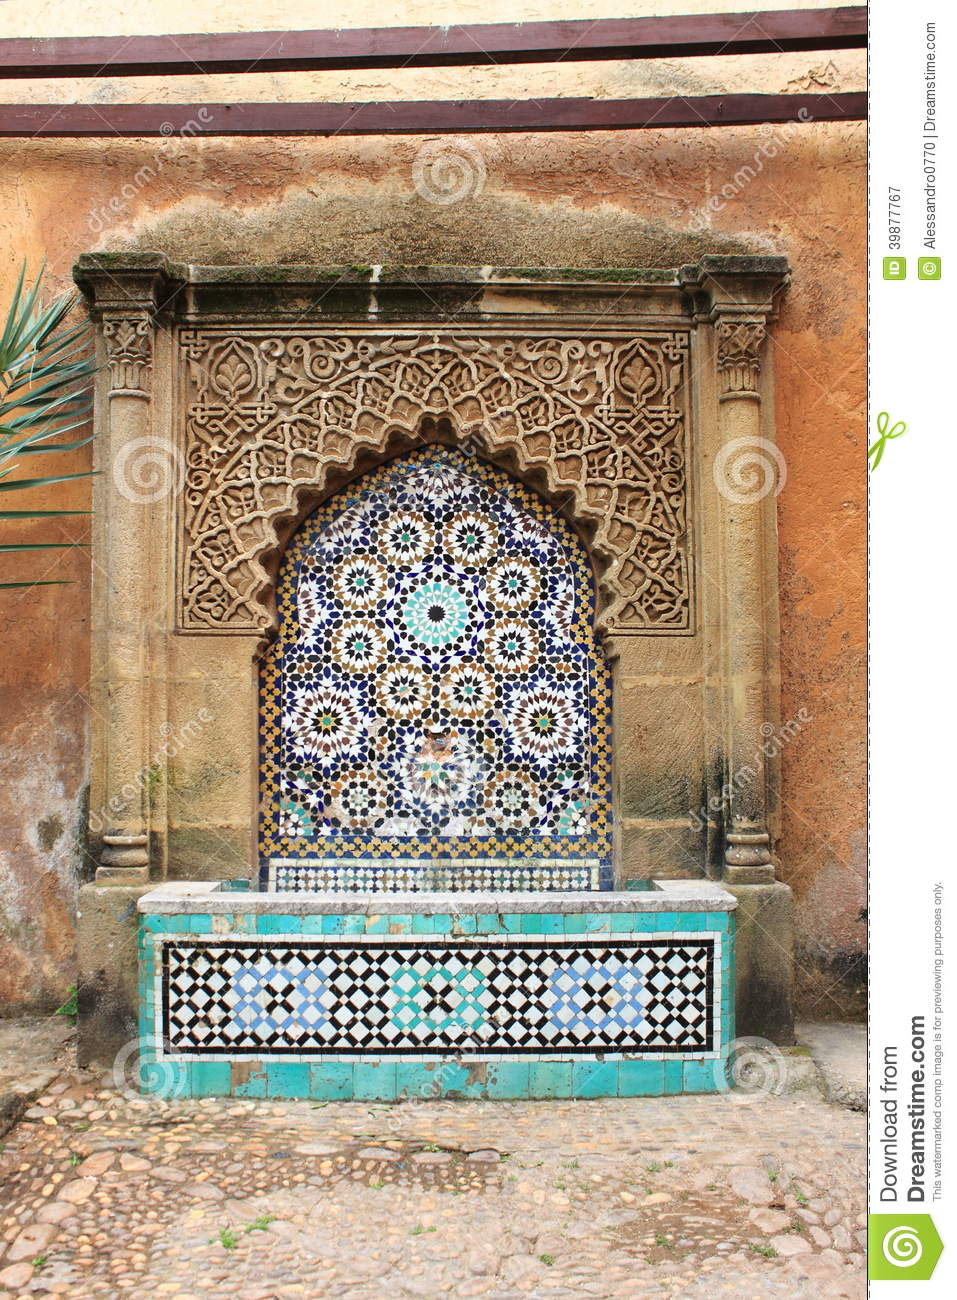 Moroccan Fountain With Mosaic Tiles Stock Photo Image